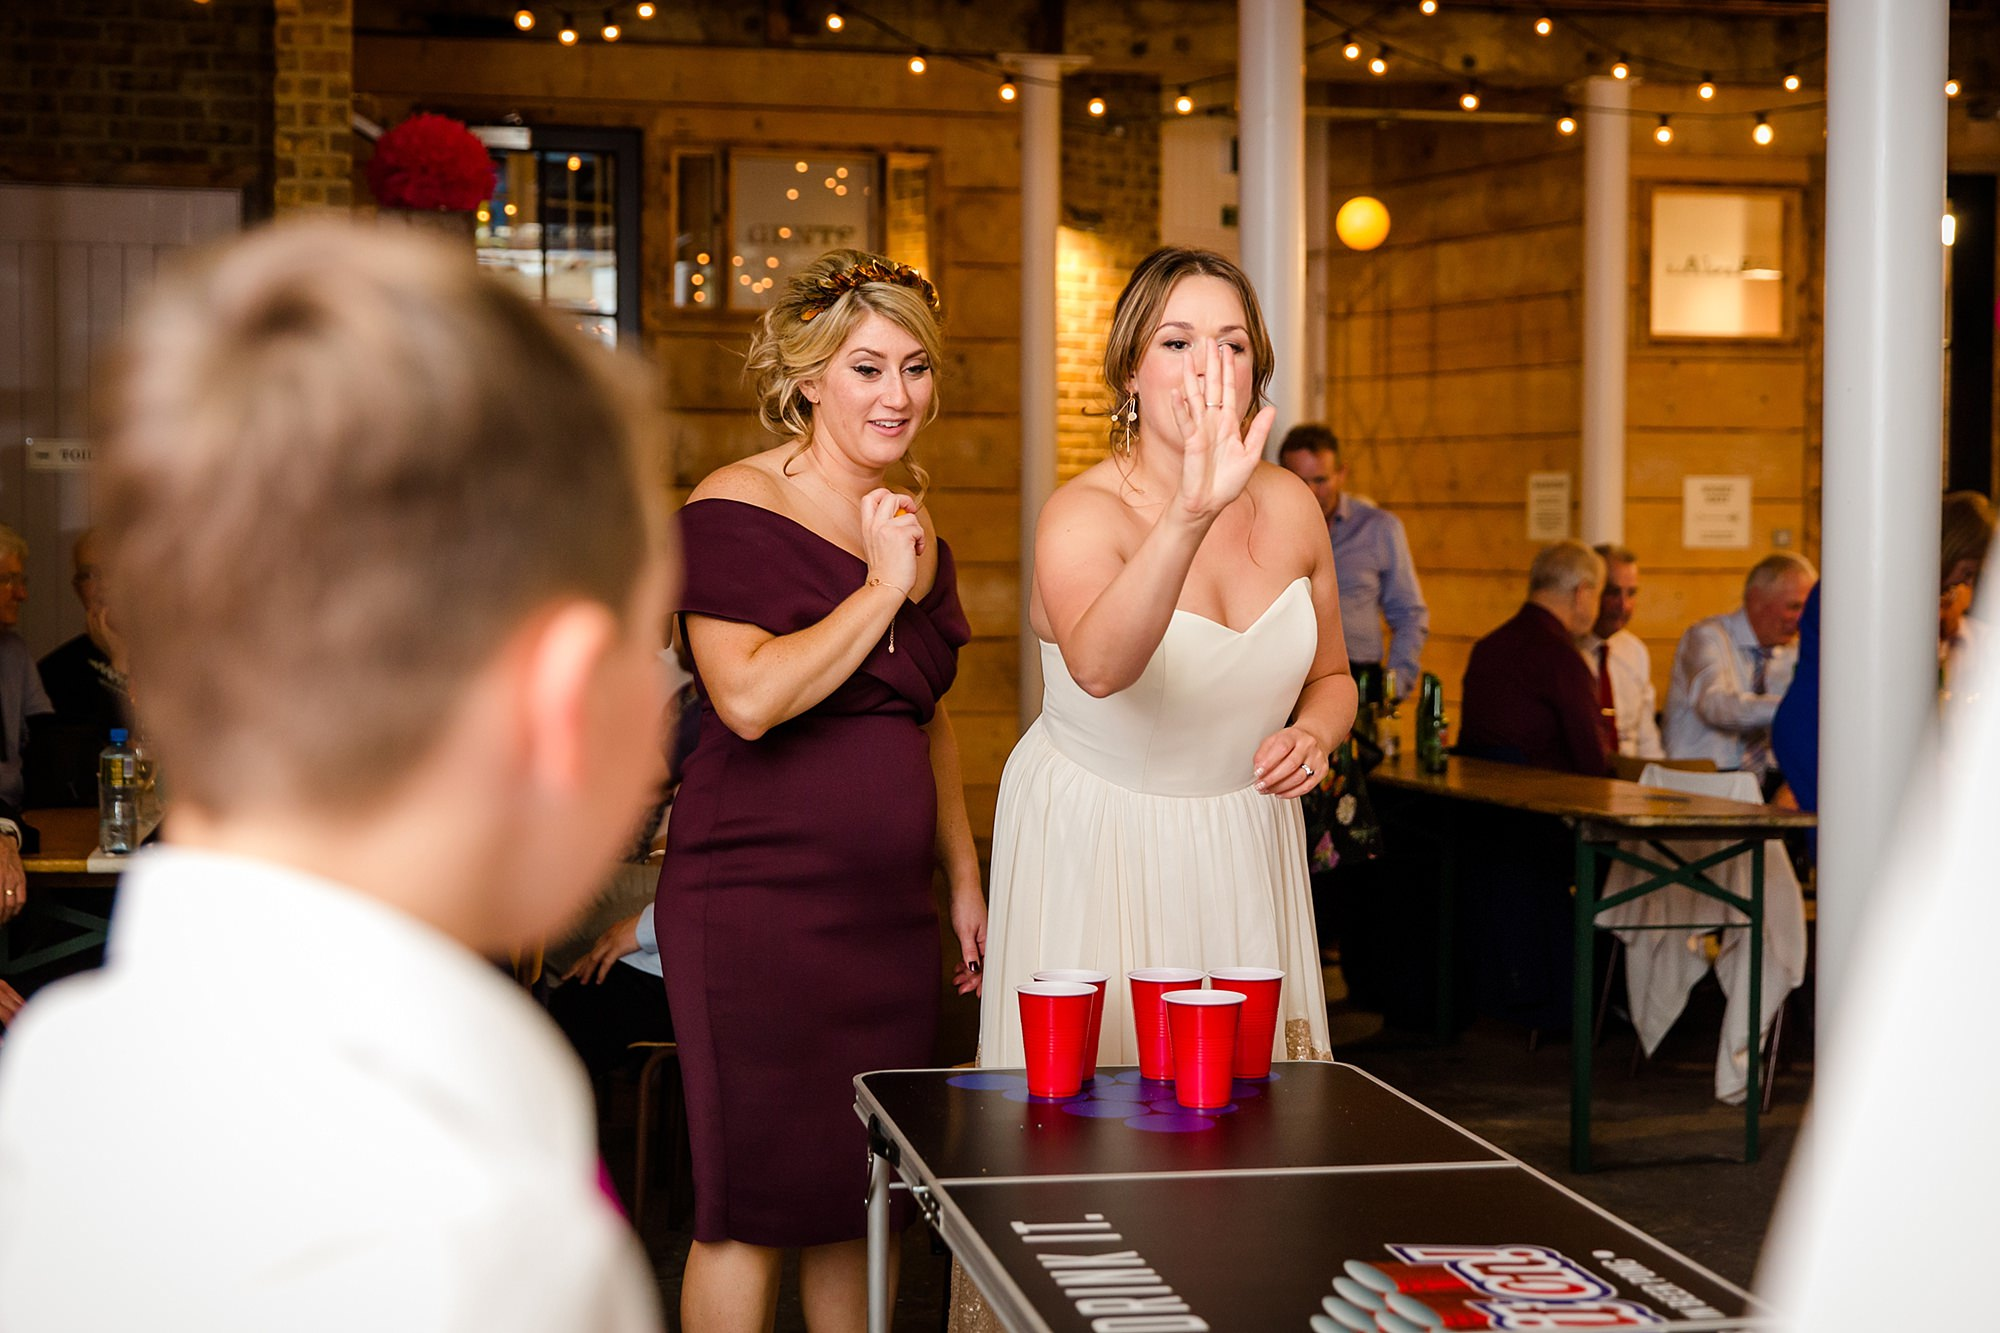 Fun London Wedding bride throwing beer pong ball